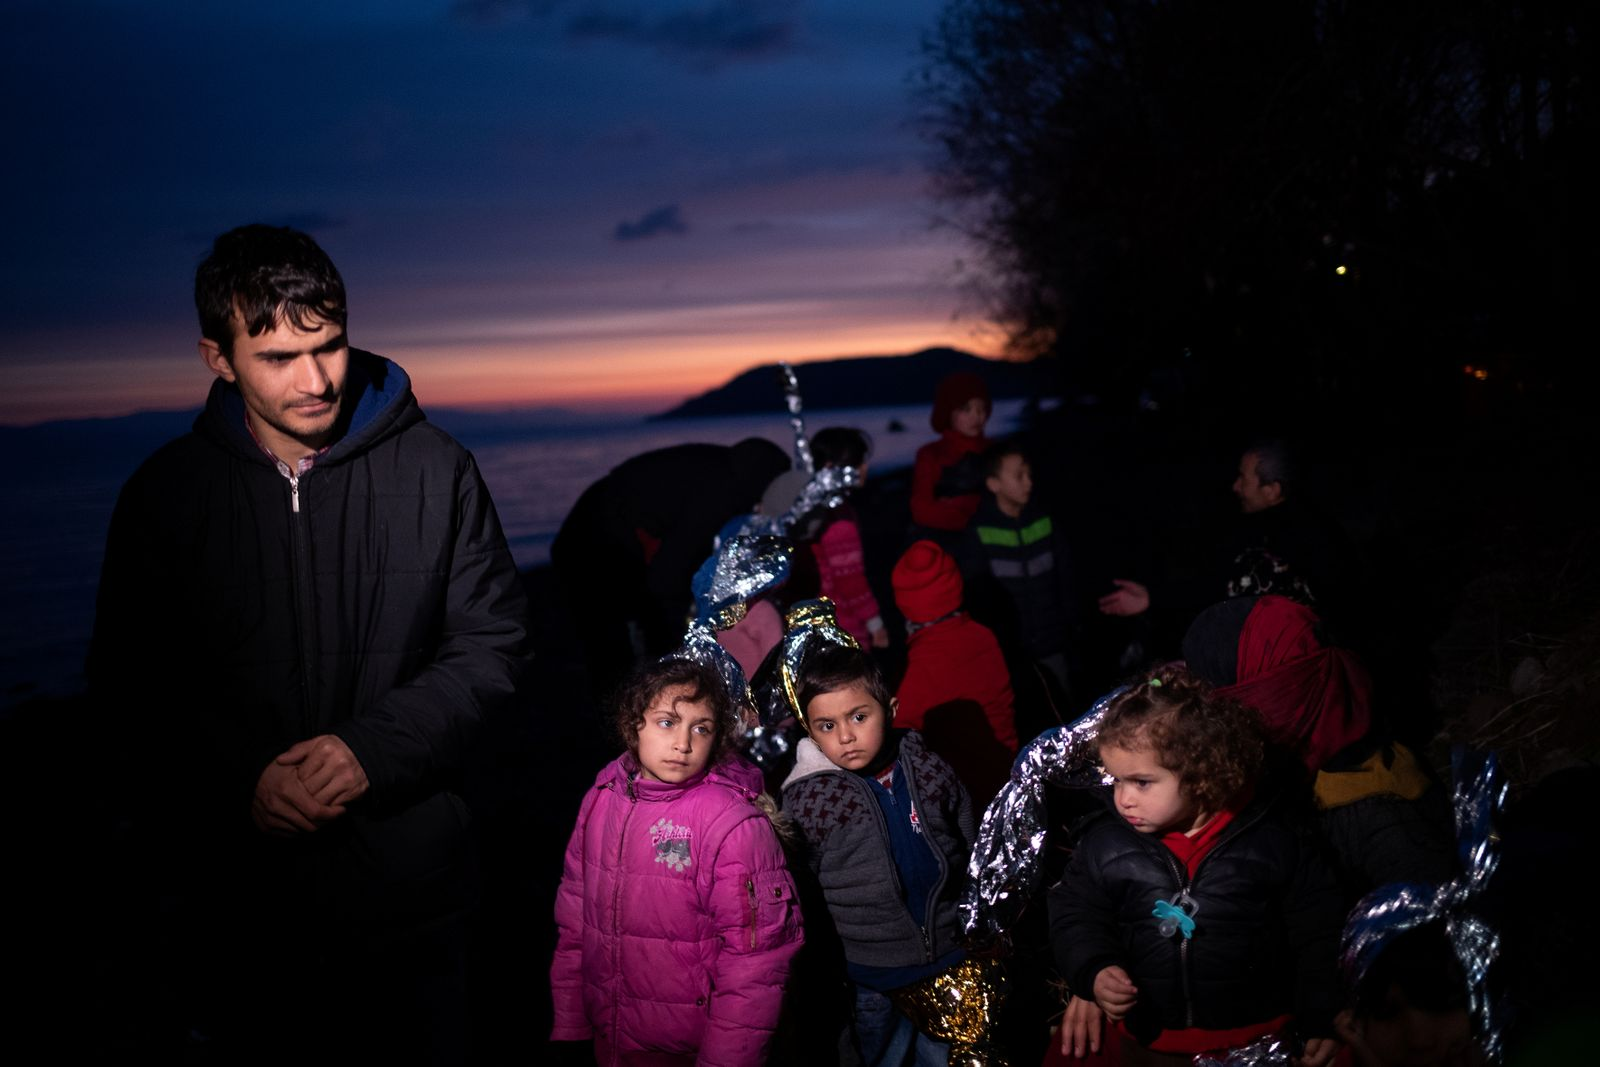 Migrants from Afghanistan are seen on a beach near the village of Skala Sikamias, after crossing part of the Aegean Sea from Turkey to the island of Lesbos